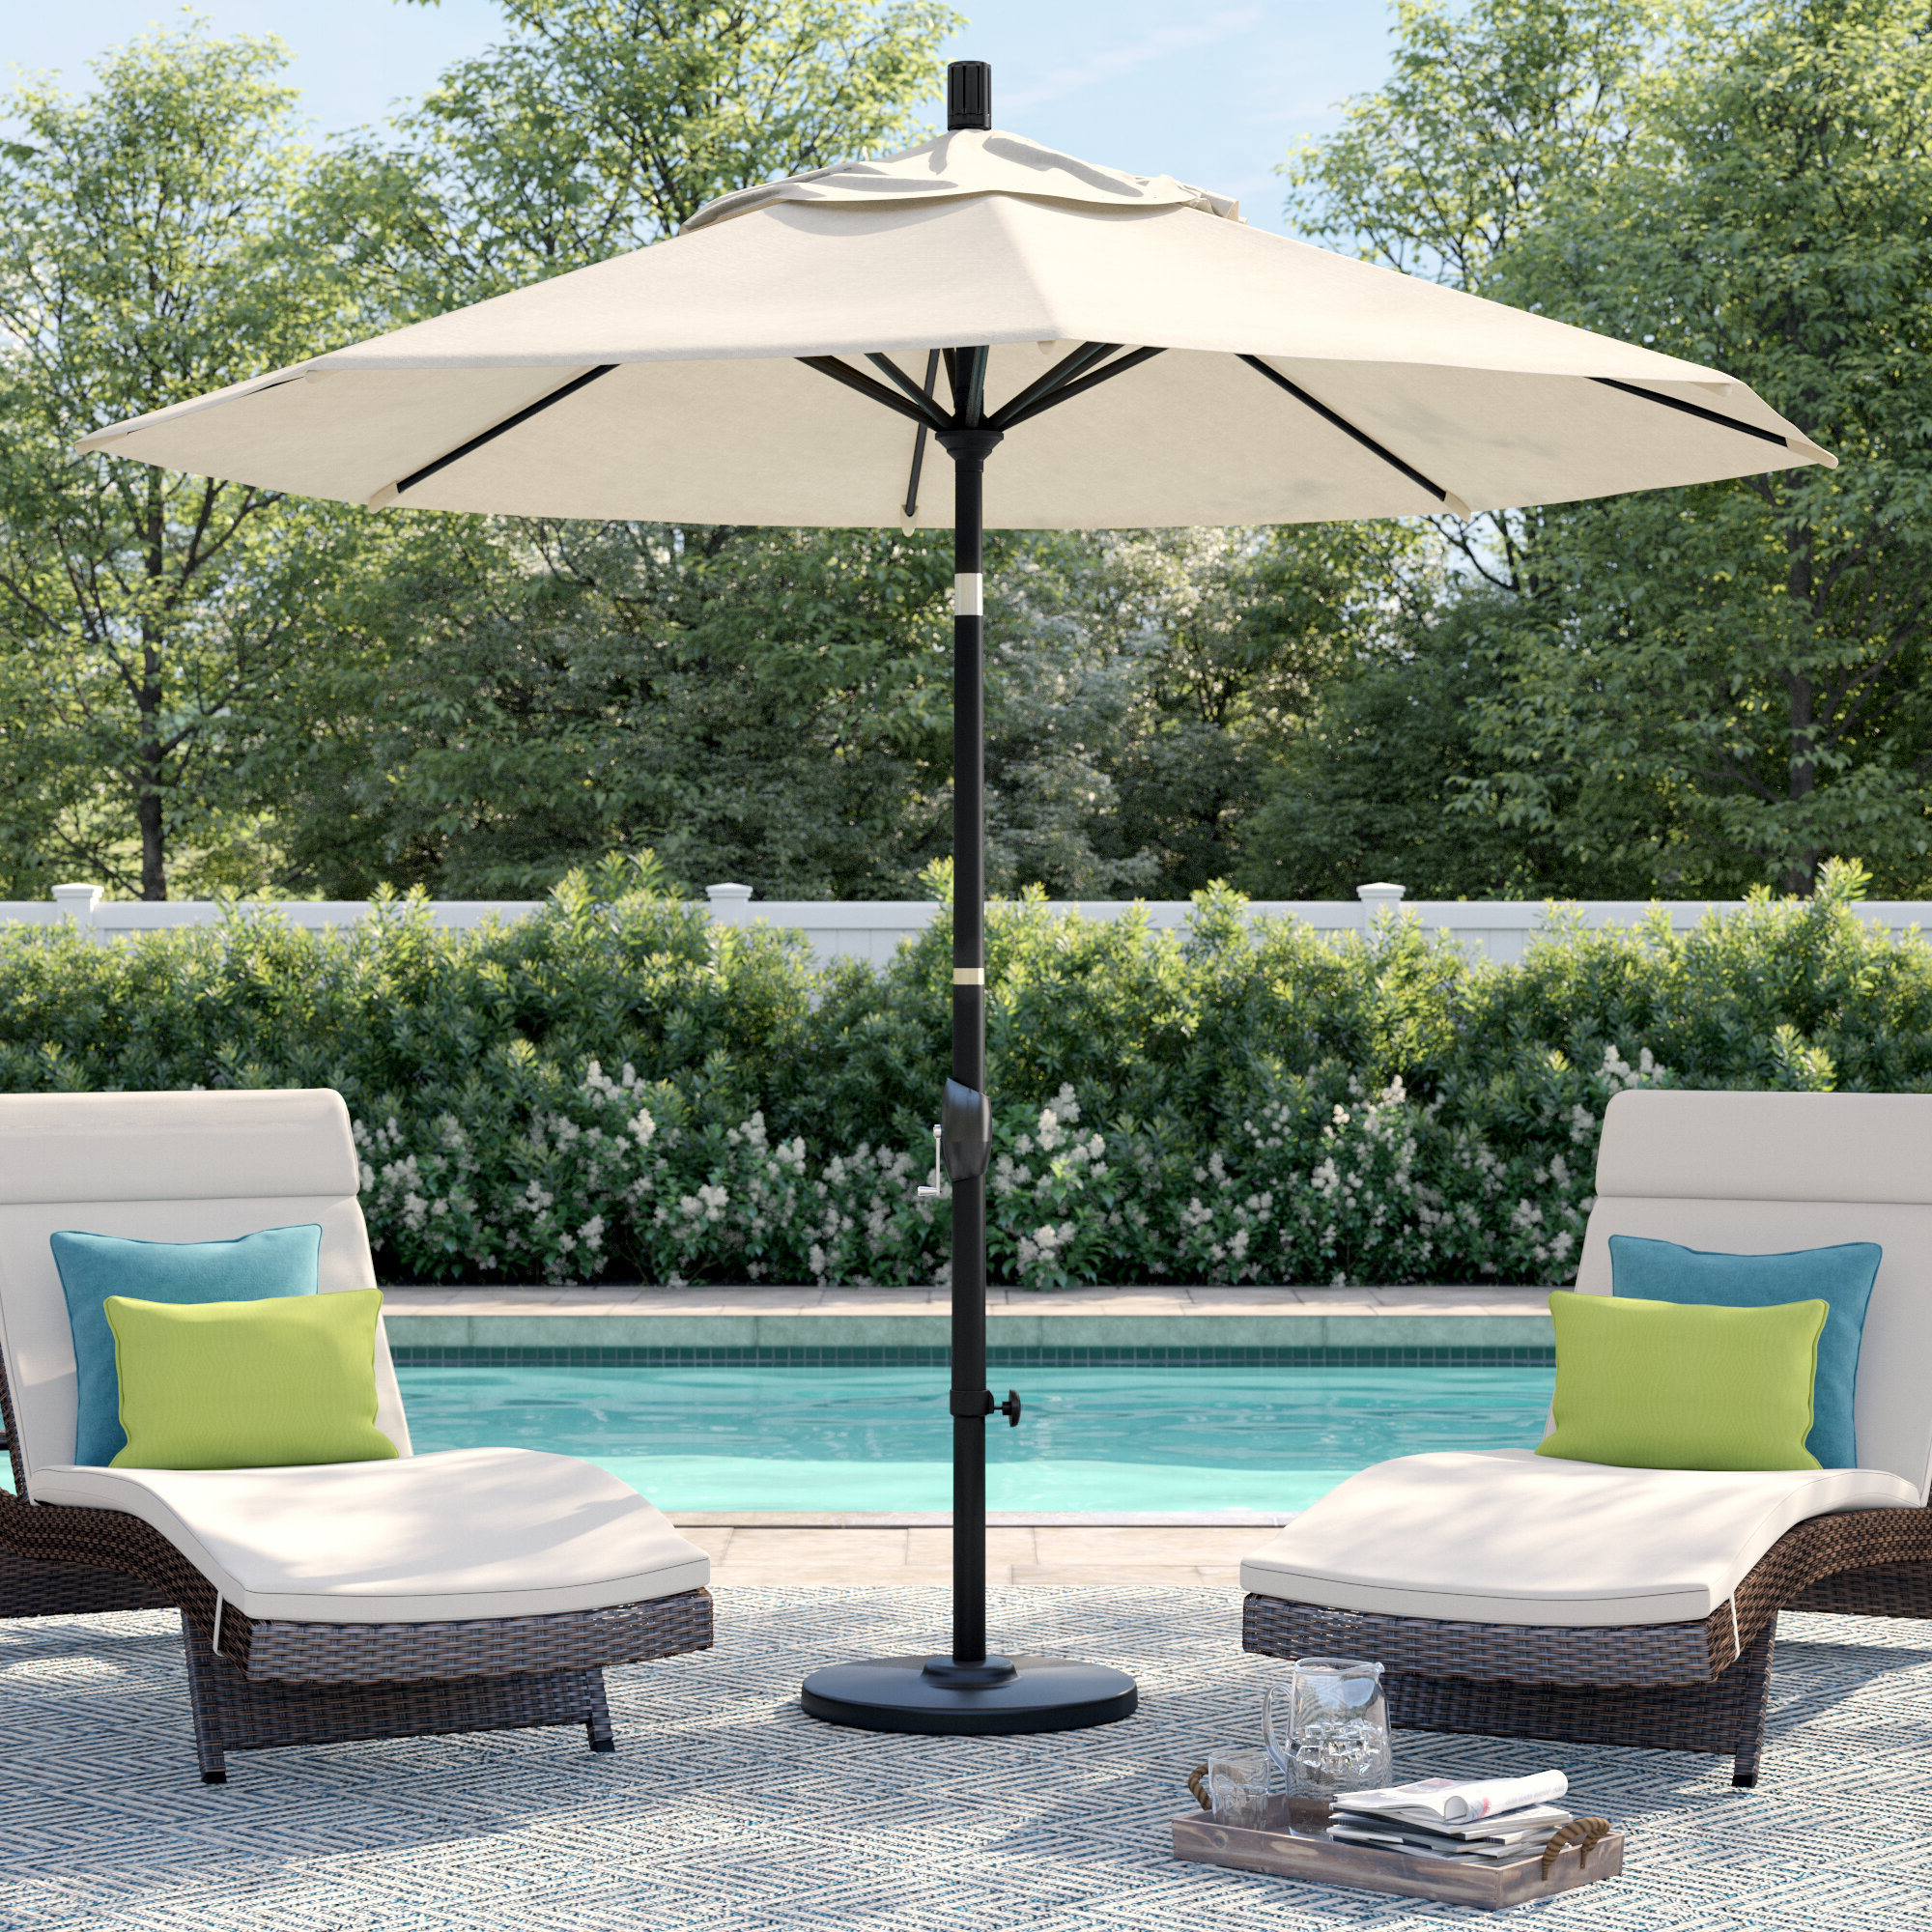 Carina 9' Market Umbrella Regarding 2019 Ryant Market Umbrellas (View 4 of 20)